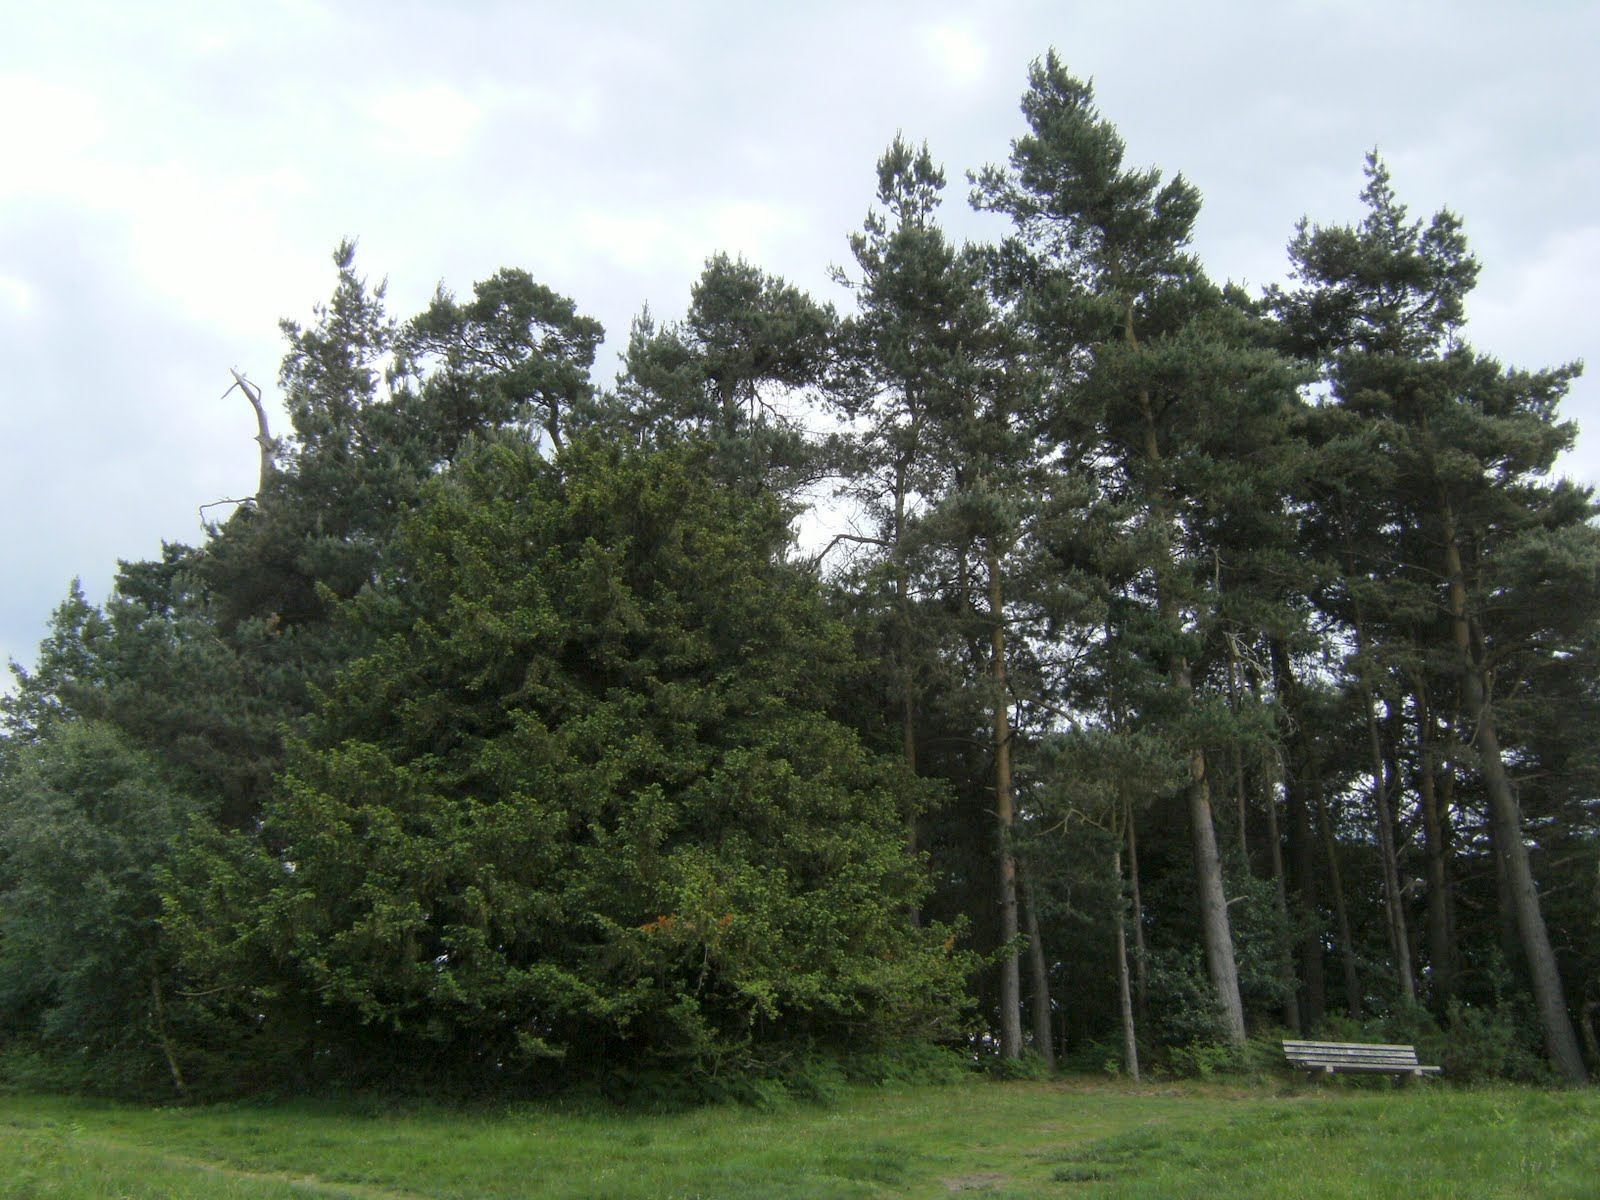 1006120050 The Enchanted Place, Ashdown Forest